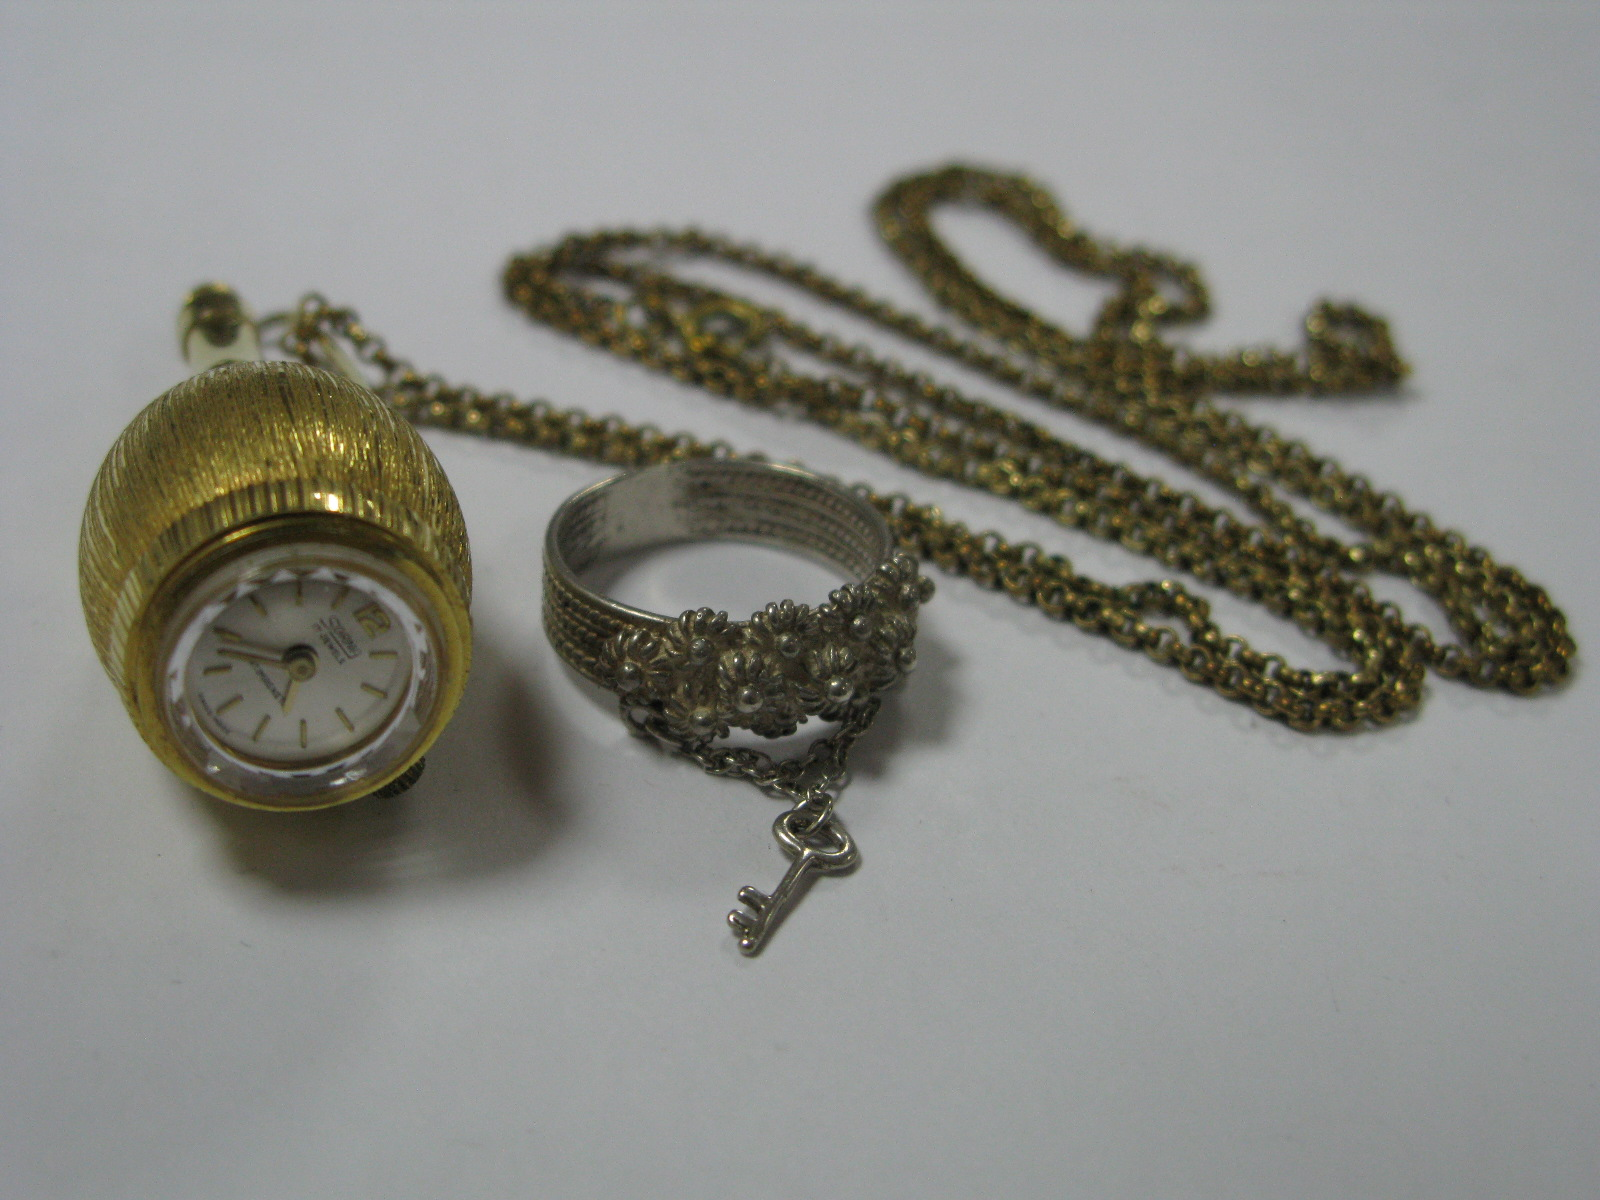 Lot 358 - Sorna; A Novelty Bottle Shape Watch Pendant, on belcher link chain; together with a decorative